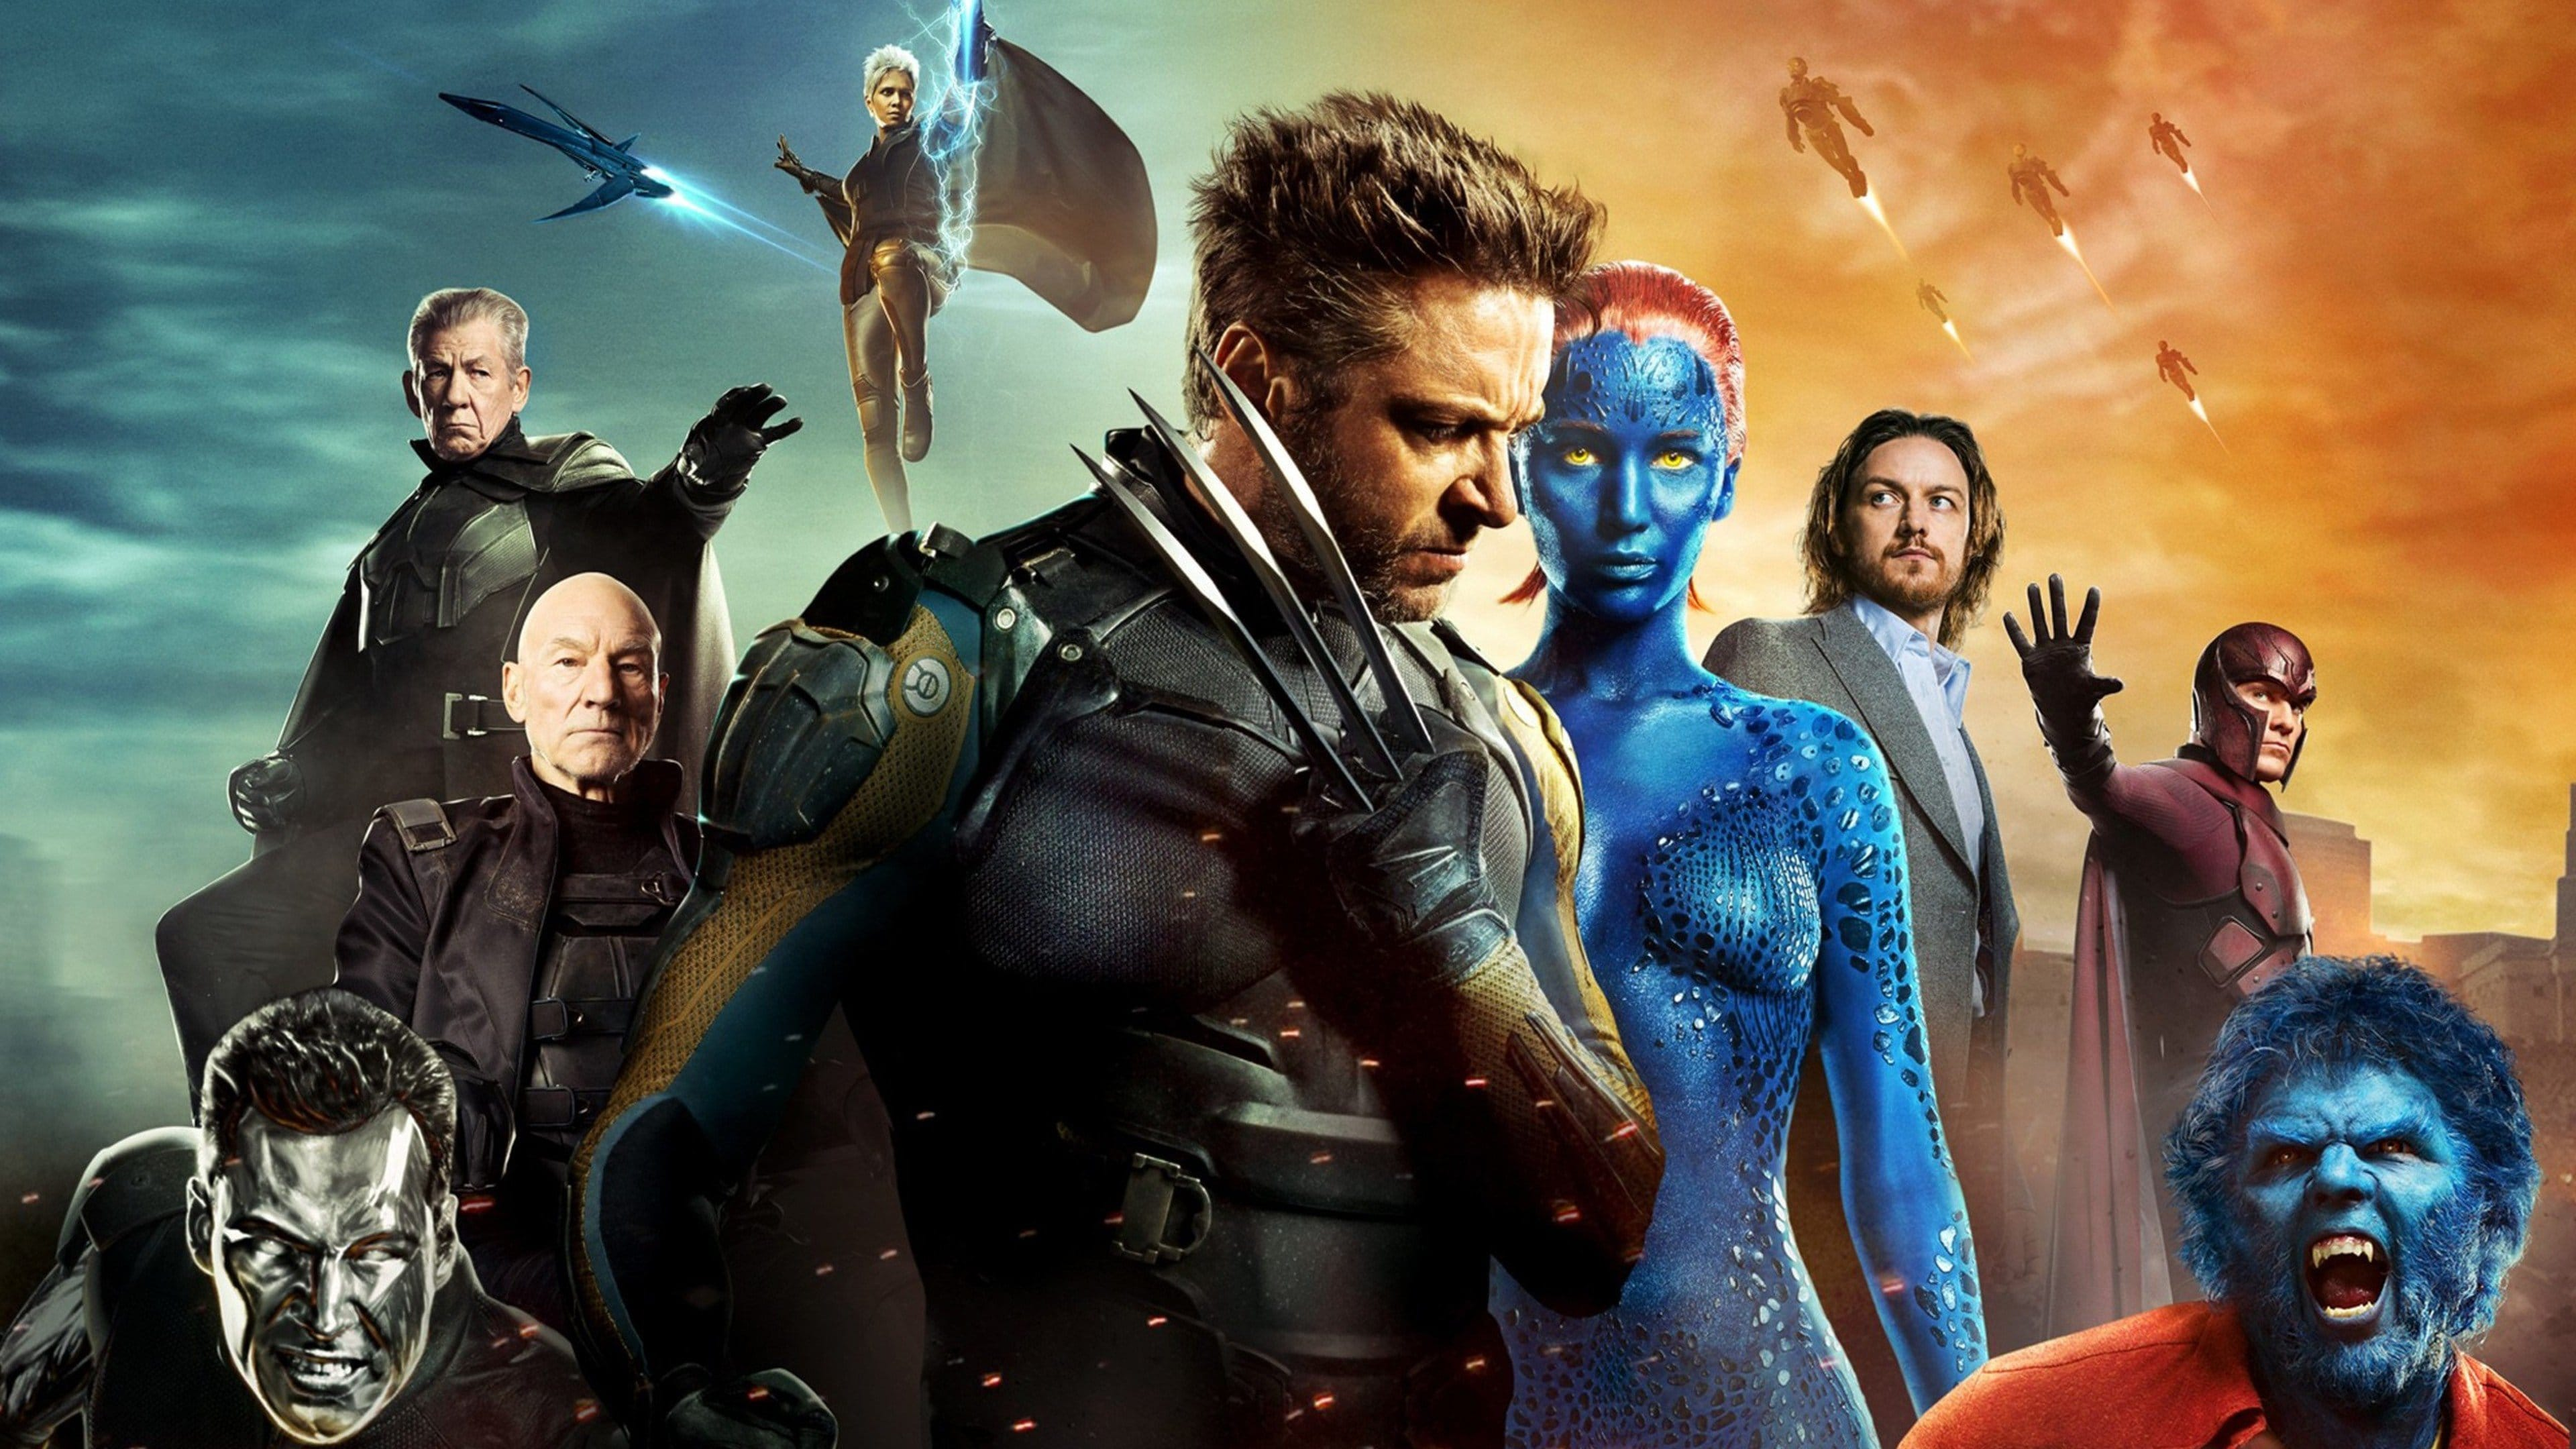 X Men Days Of Future Past Hd Wallpapers 7wallpapers Net